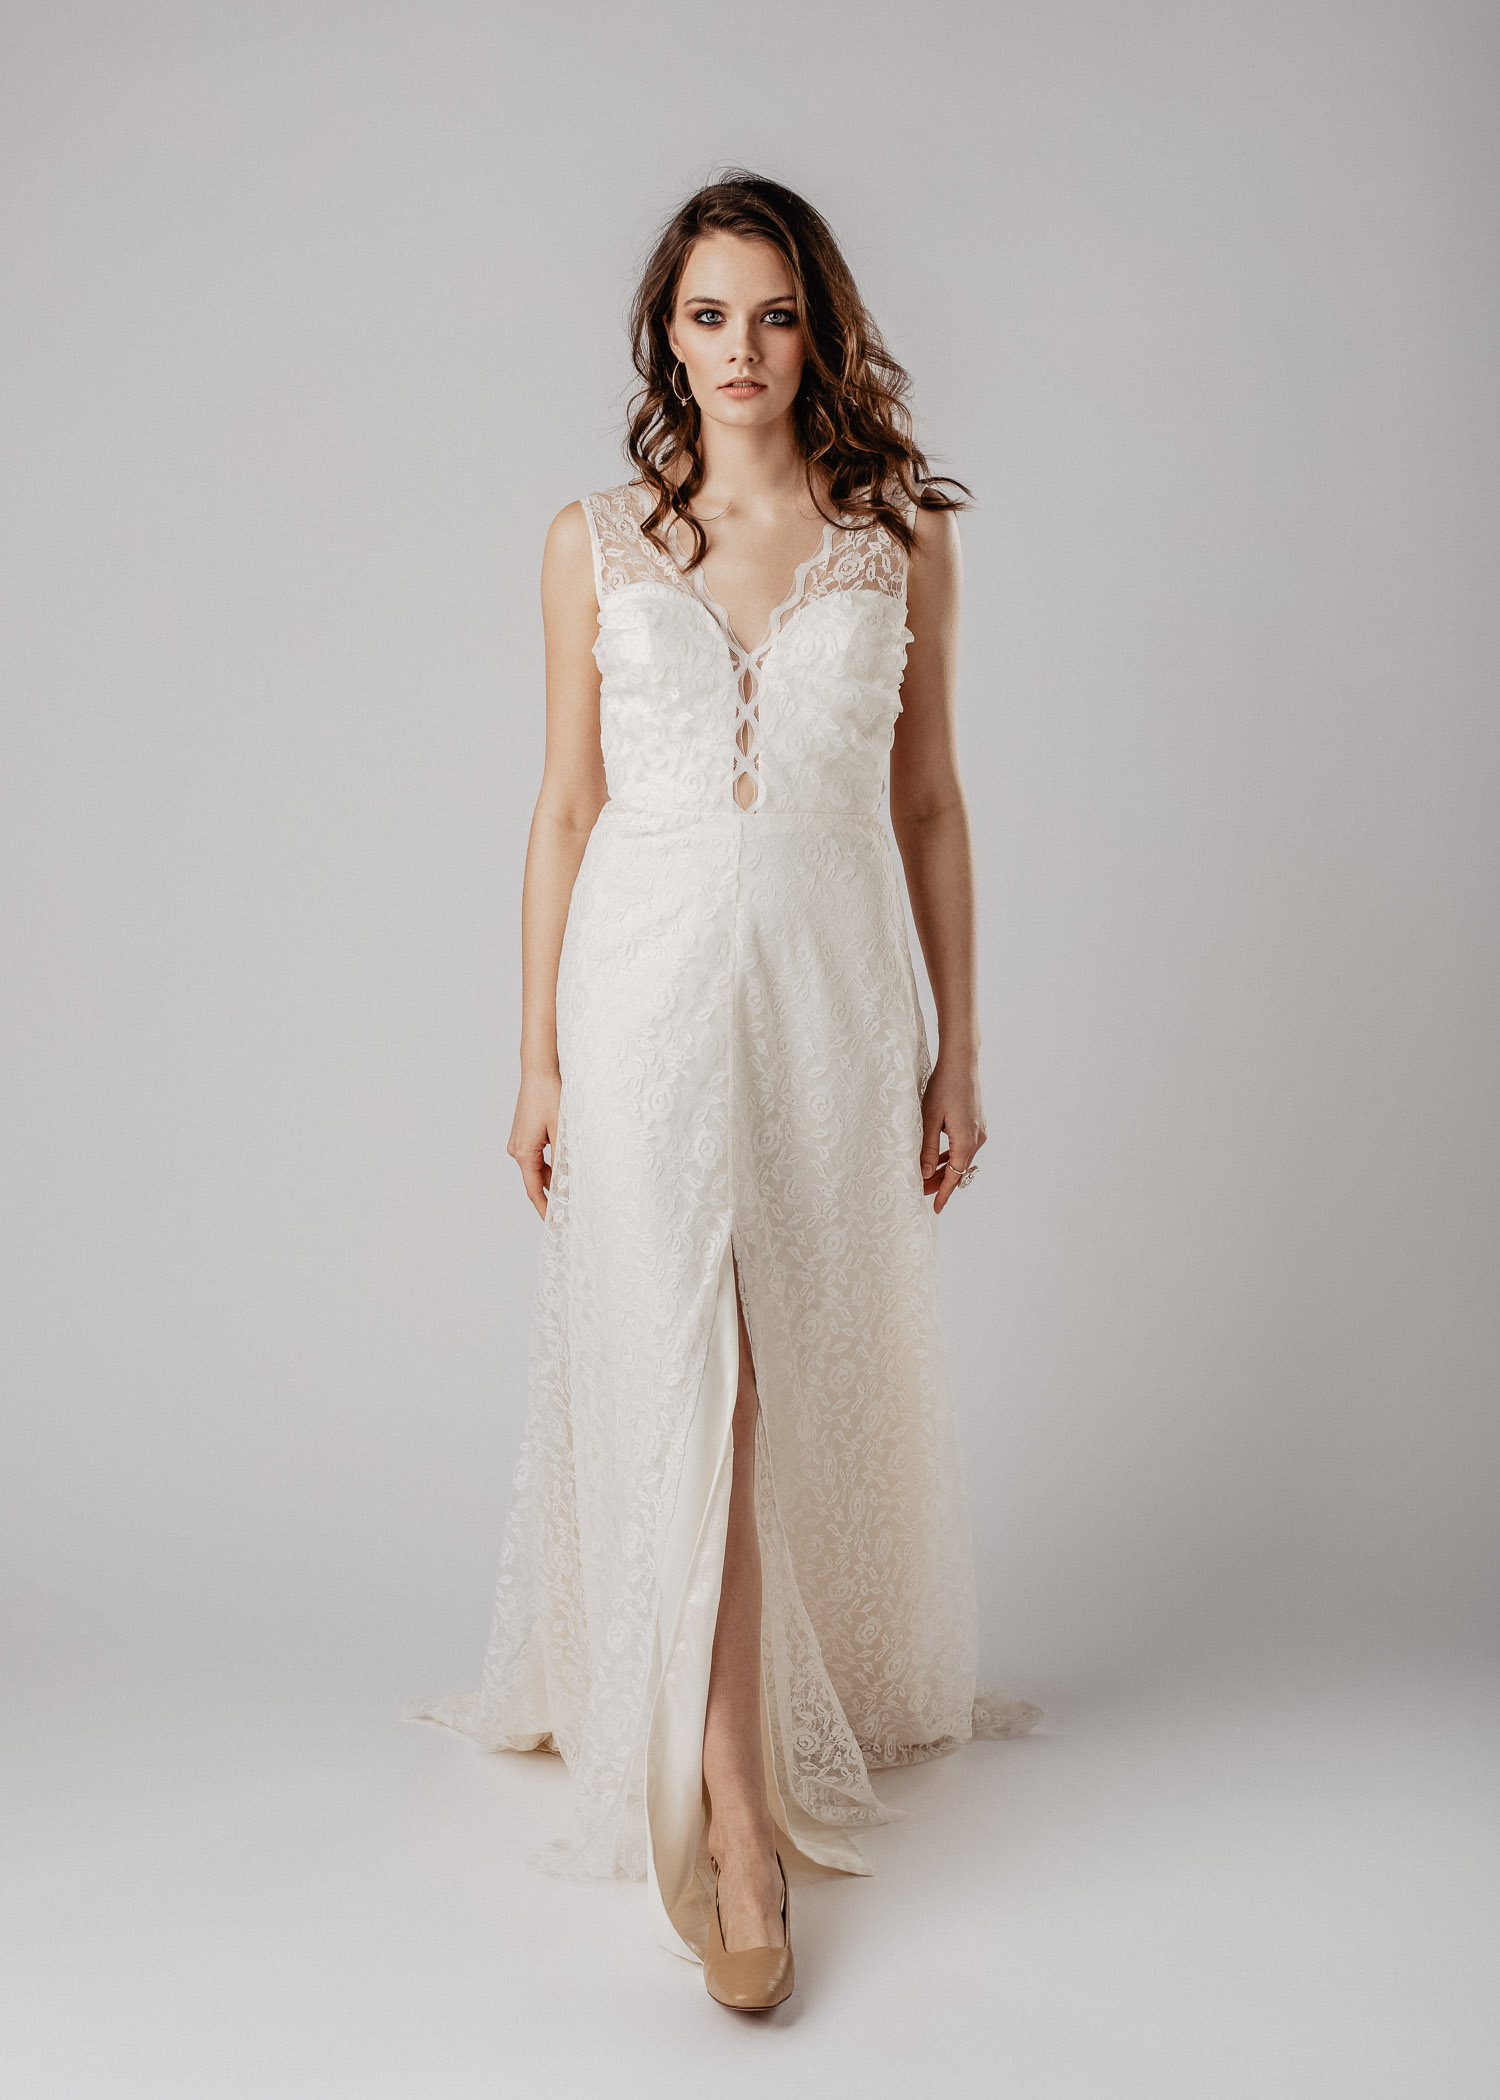 ROME wedding gown